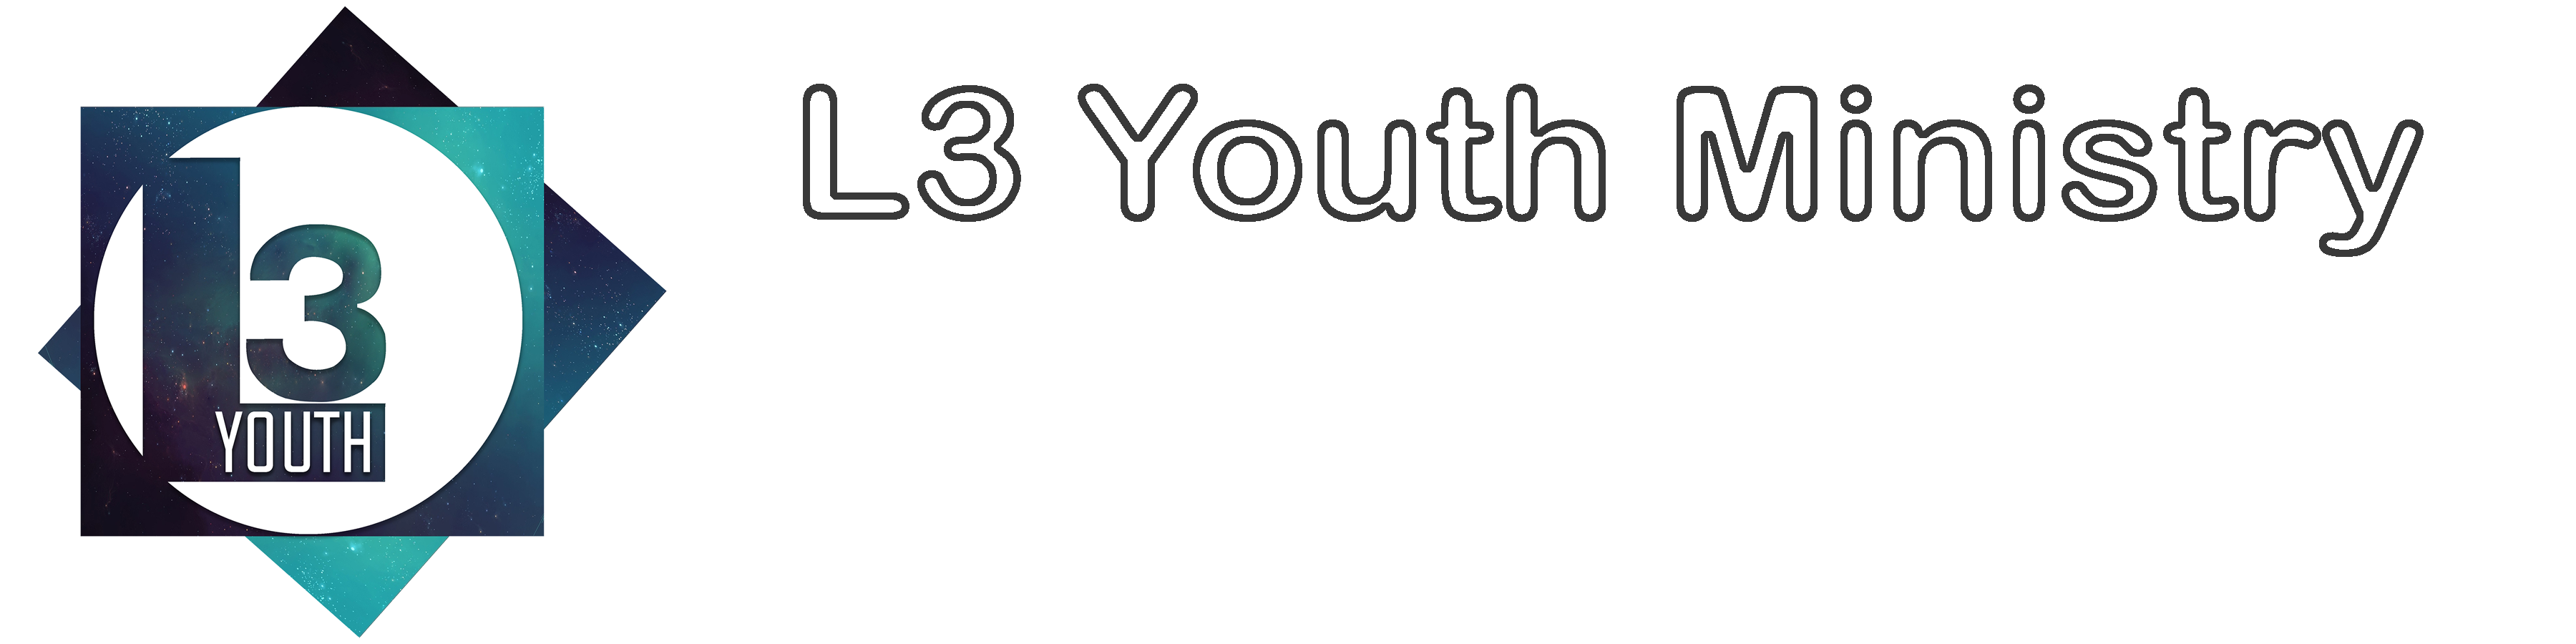 L3 Youth